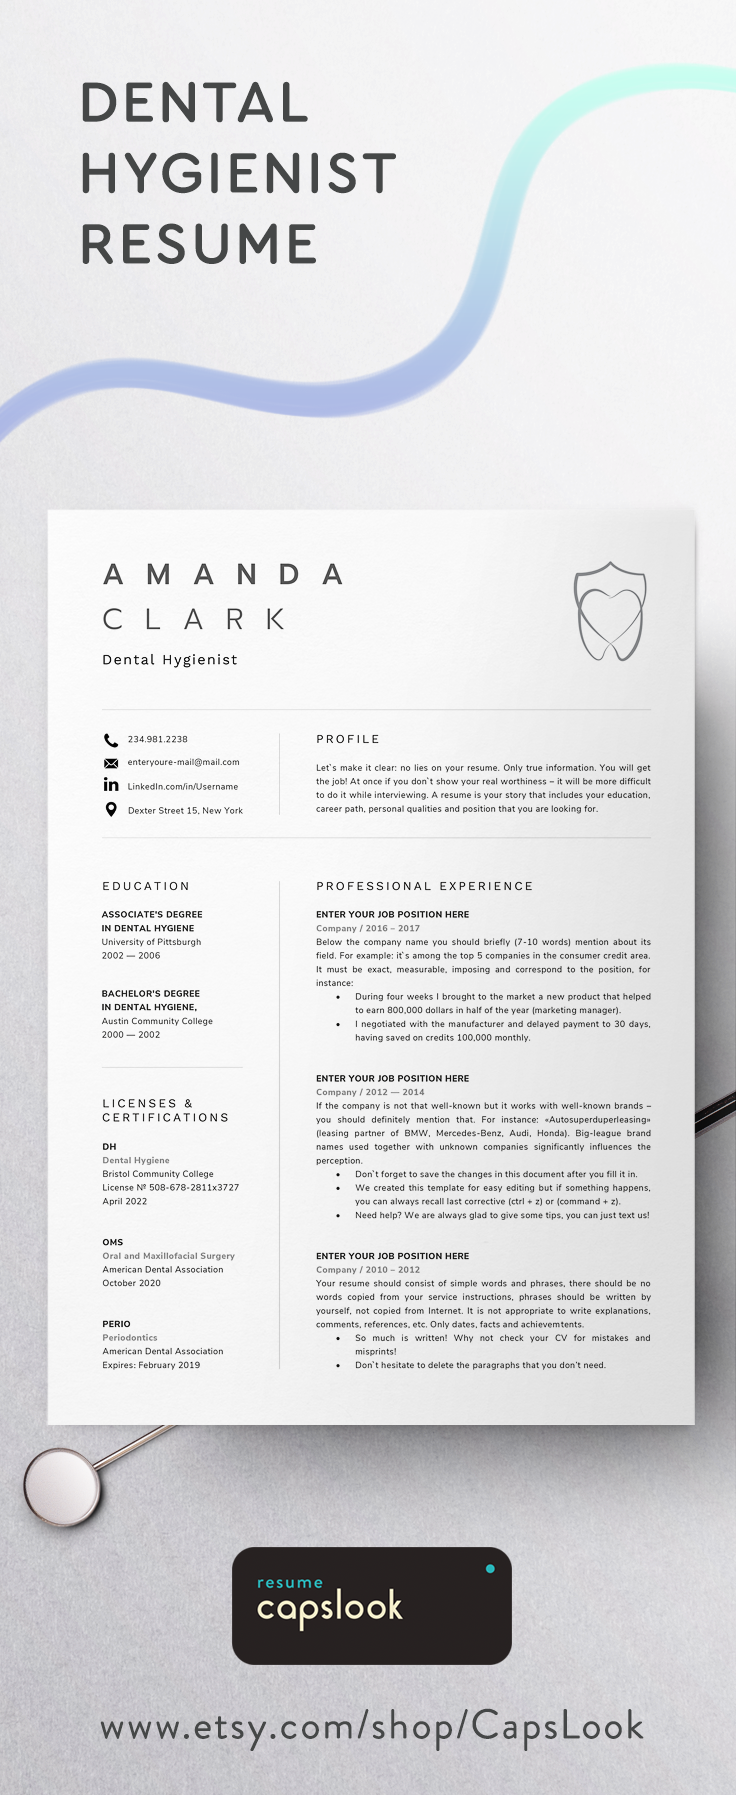 Dental Hygiene Resume Template Cv Examples For Microsoft Word Dentalschool Dentistry